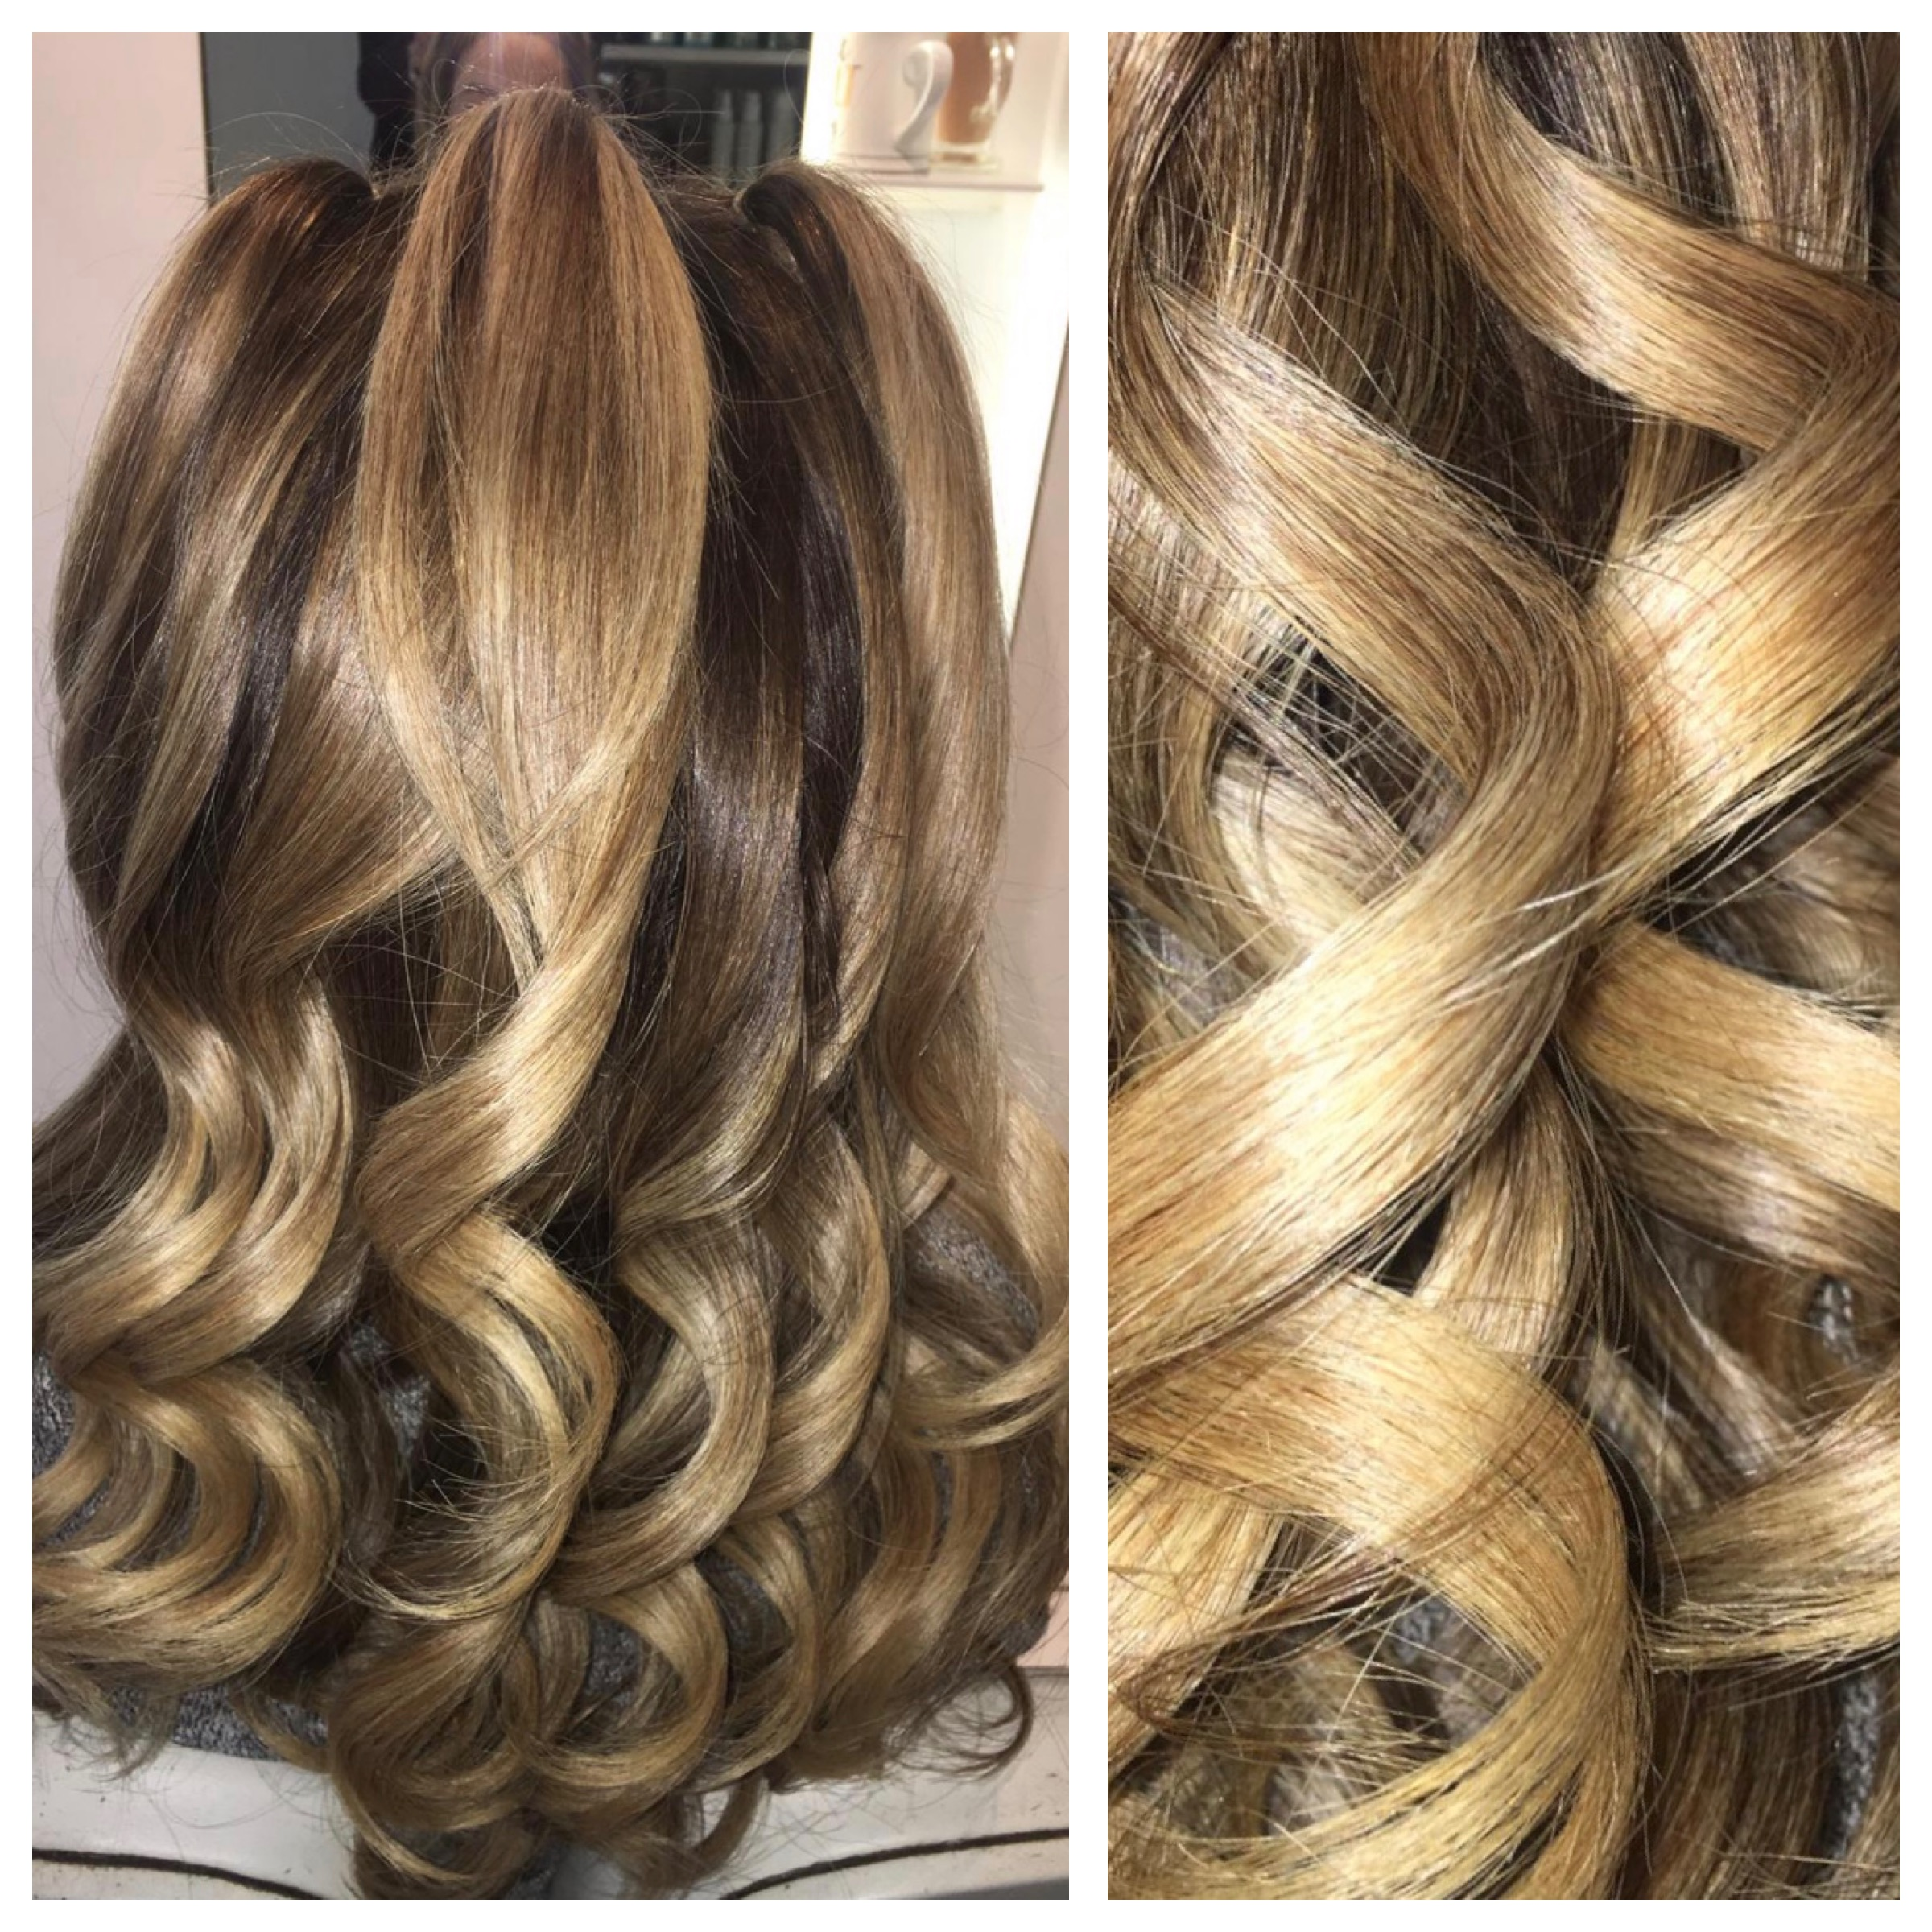 4c022a7d6b90 Long blond hair being tonged by a ghd irons to create a tight curl for the